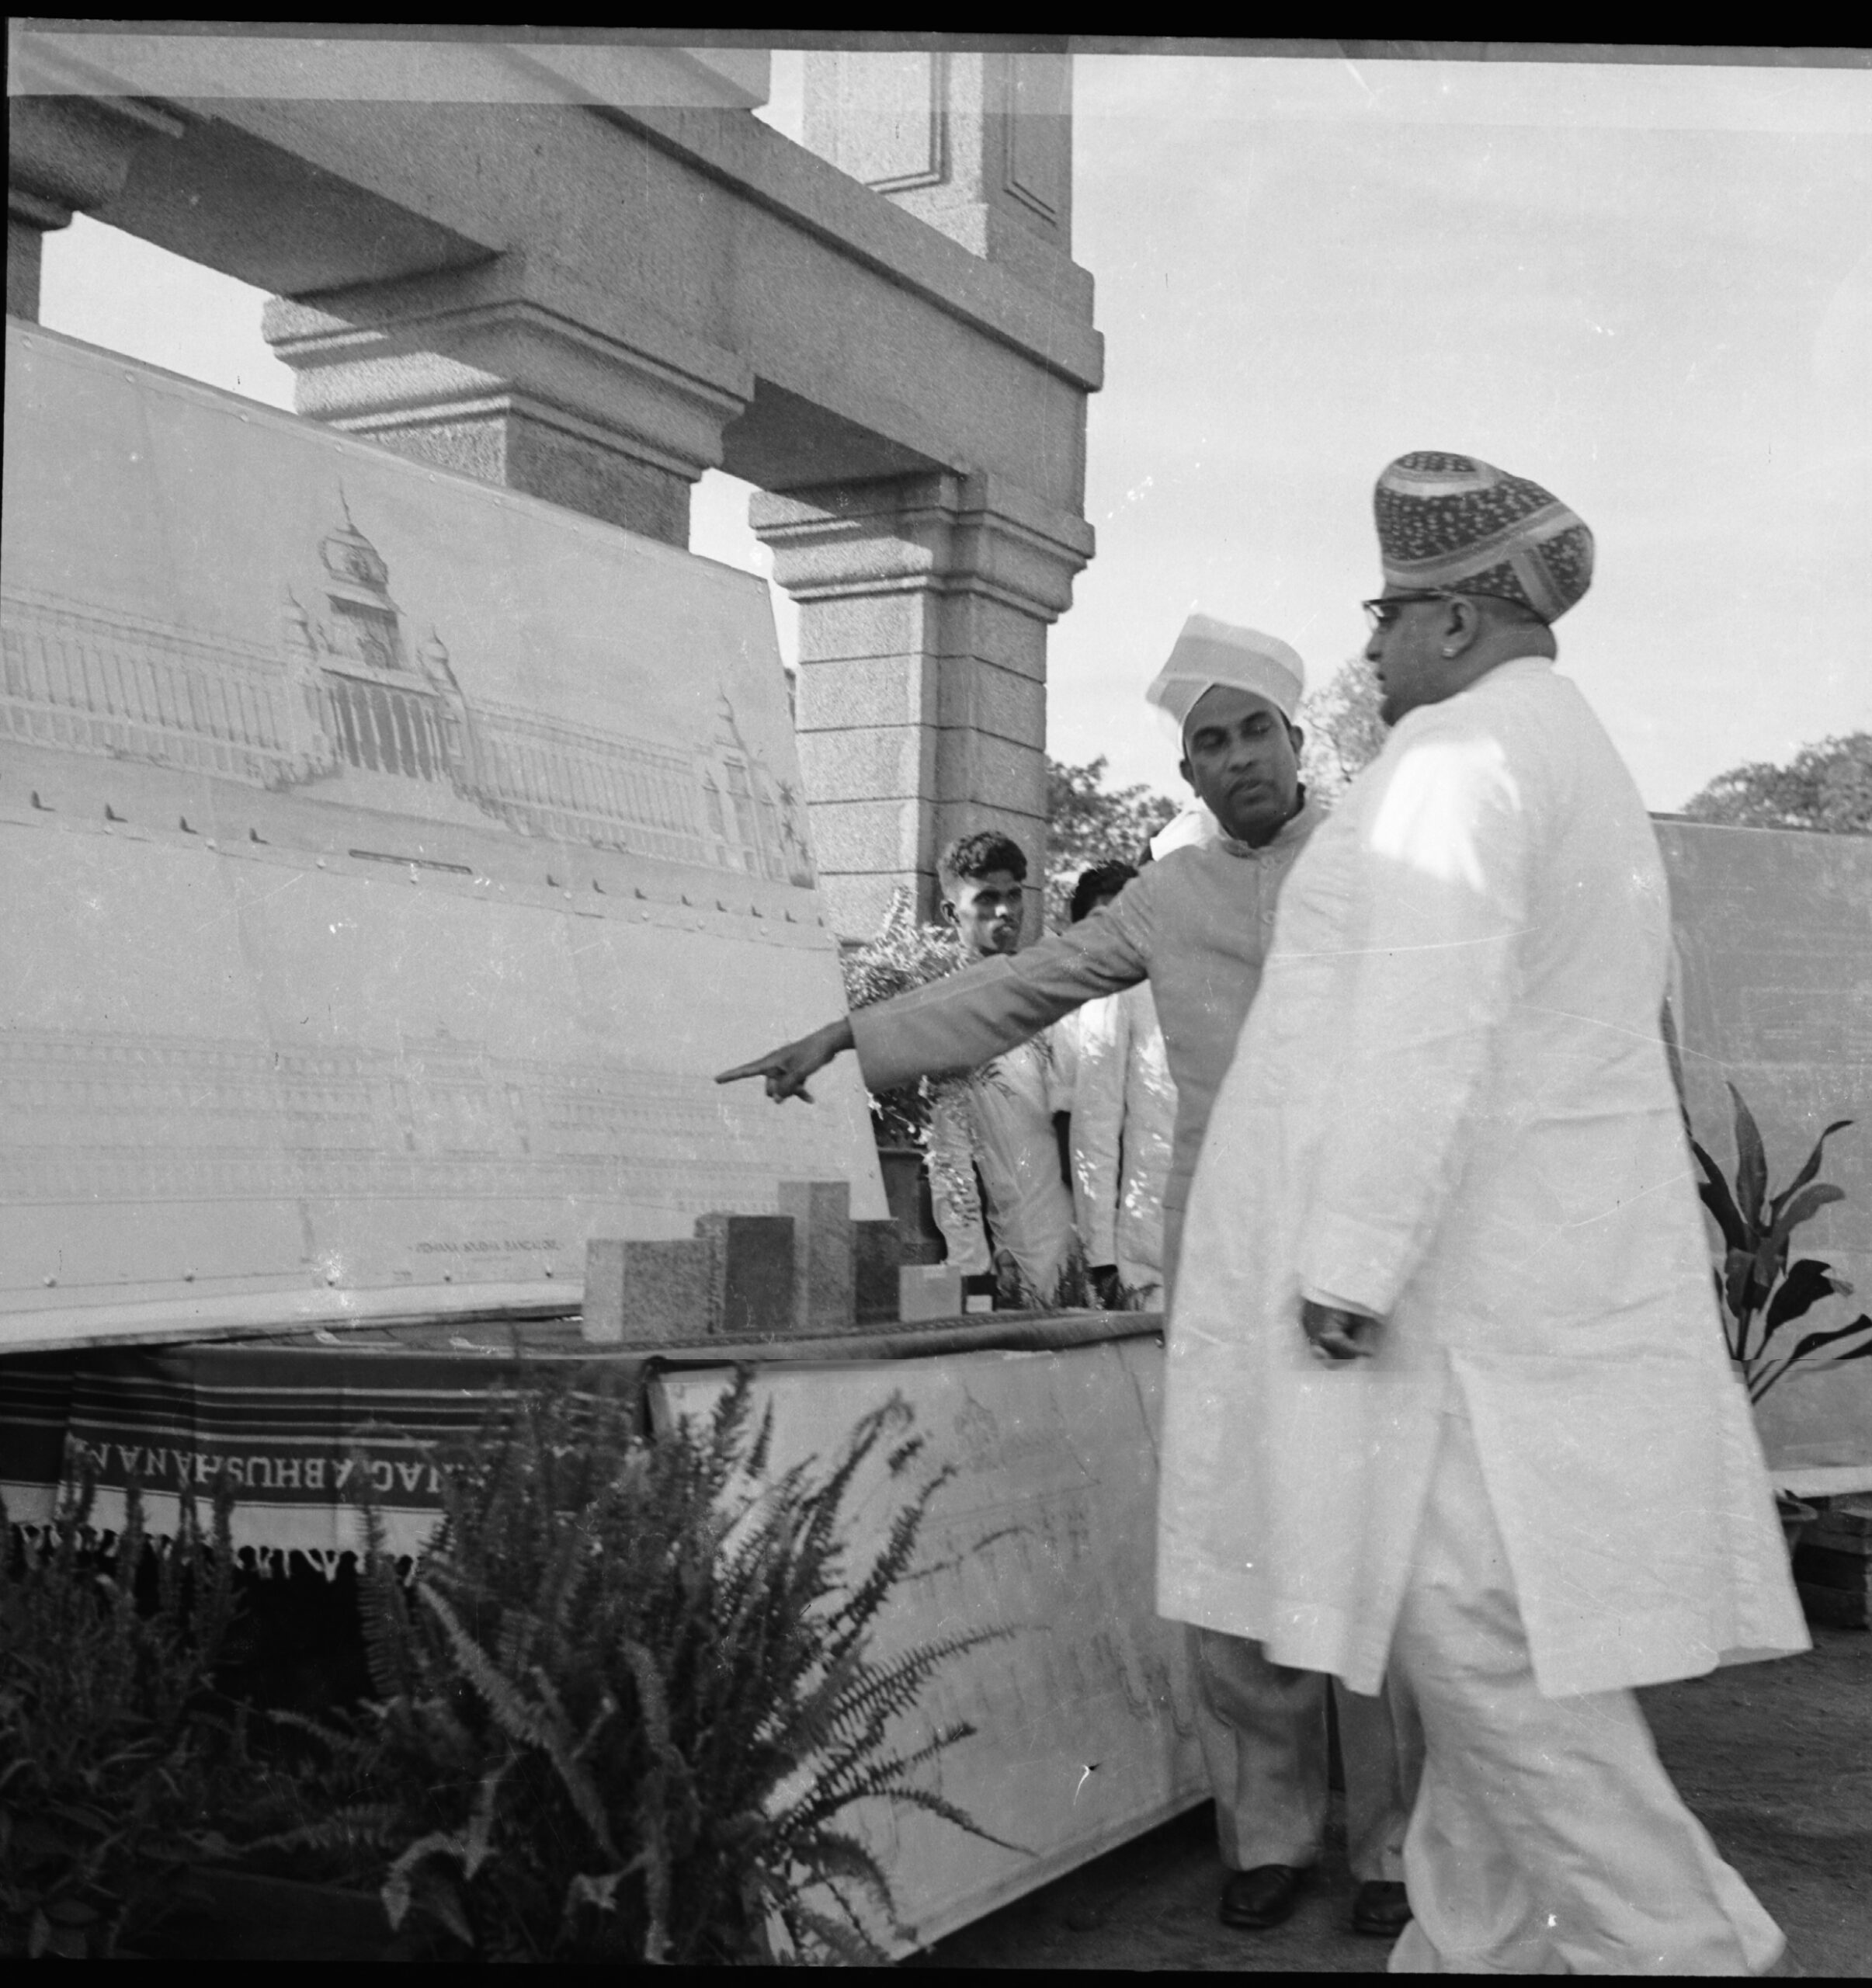 Kengal Hanumanthaiah who loved taking visitors on a tour of Vidhana Soudha is seen here with Governor Jayachamarajendra Wodeyar